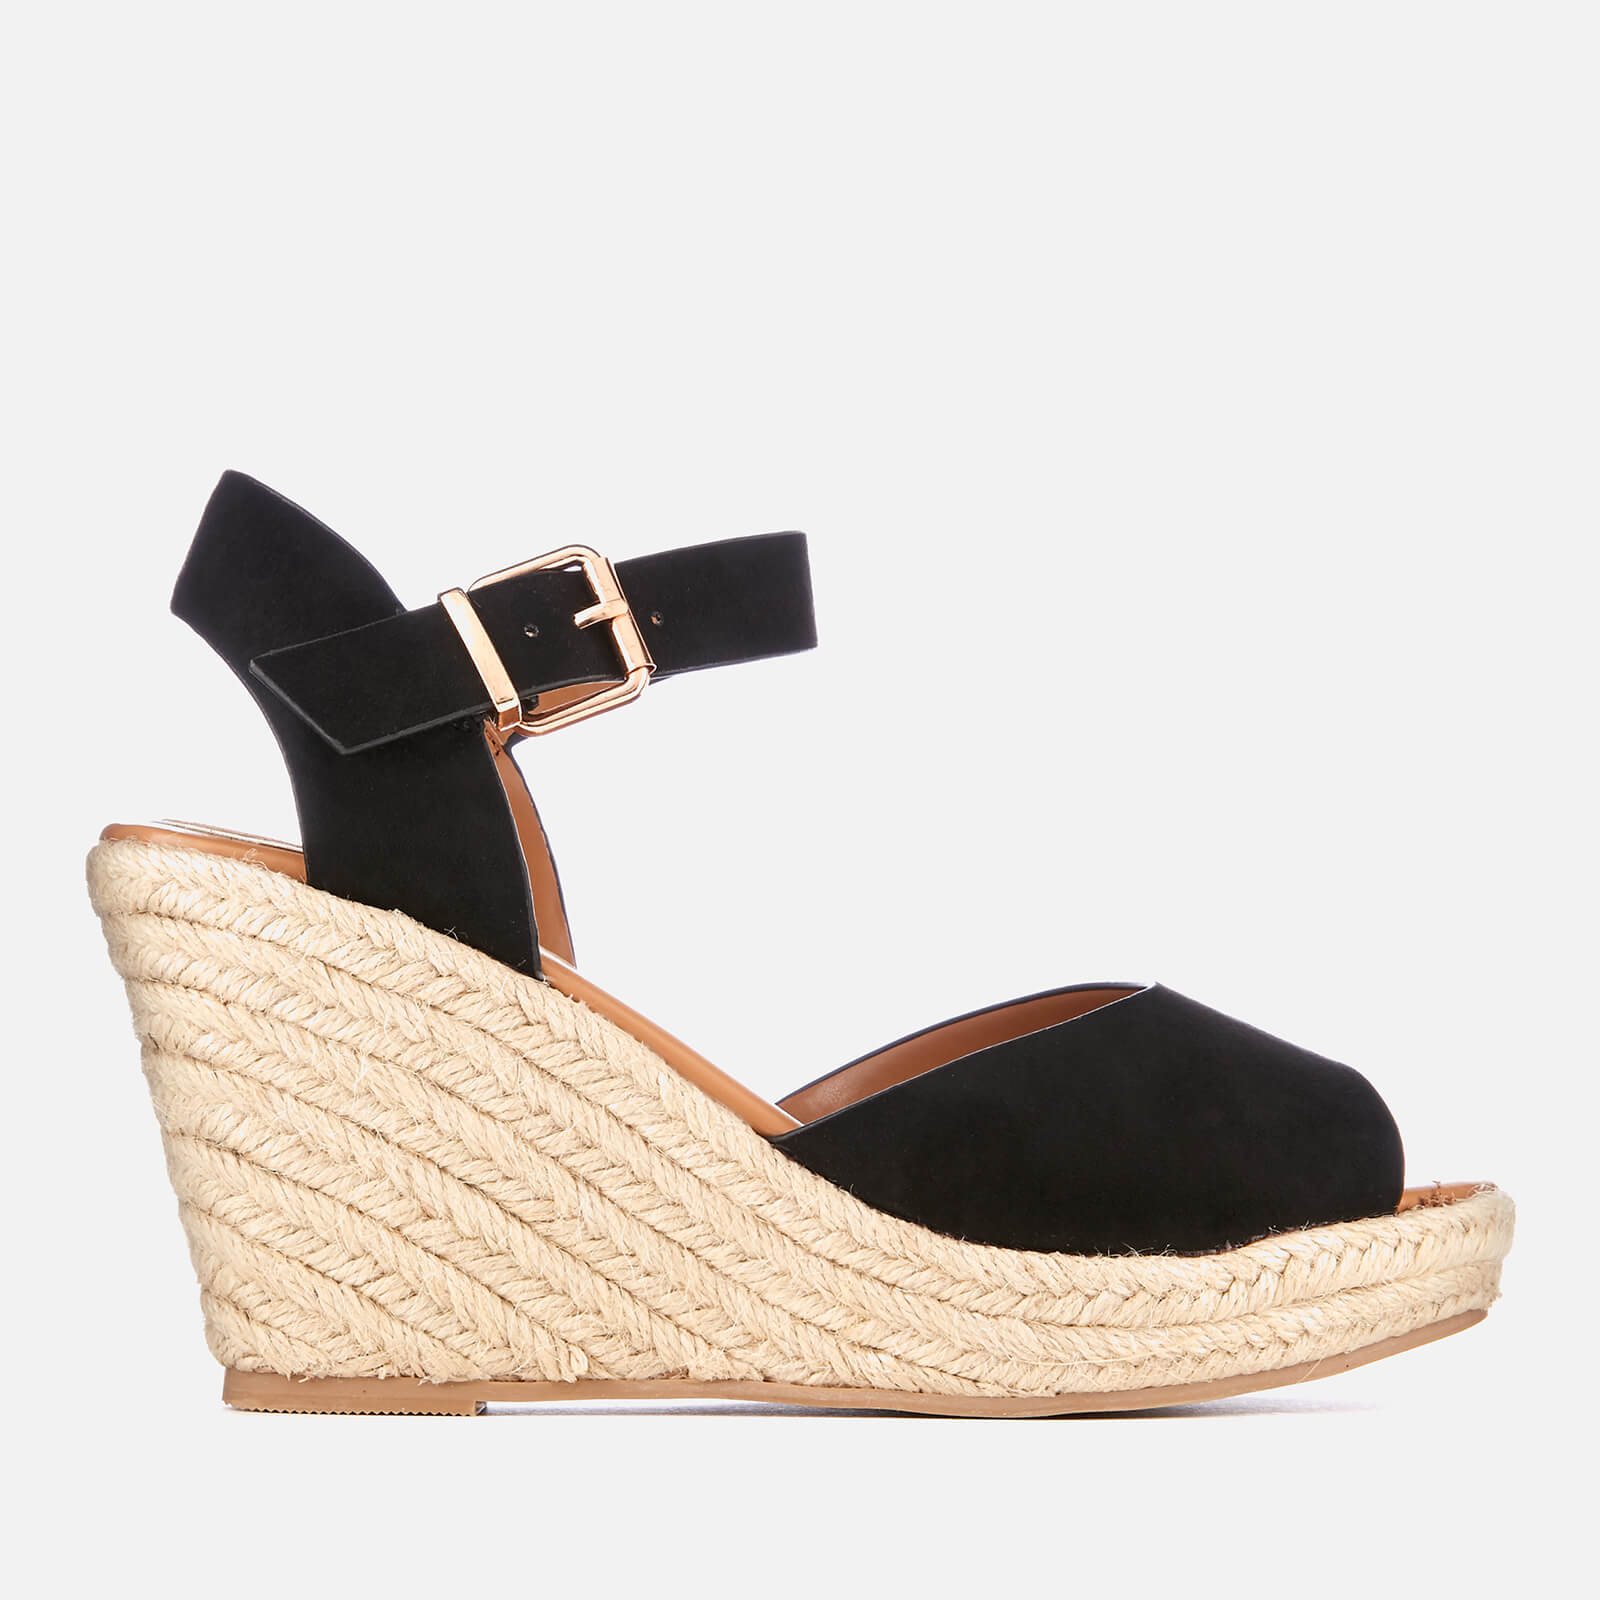 093e64d4509 Miss KG Women's Paisley Suedette Wedged Espadrille Sandals - Black